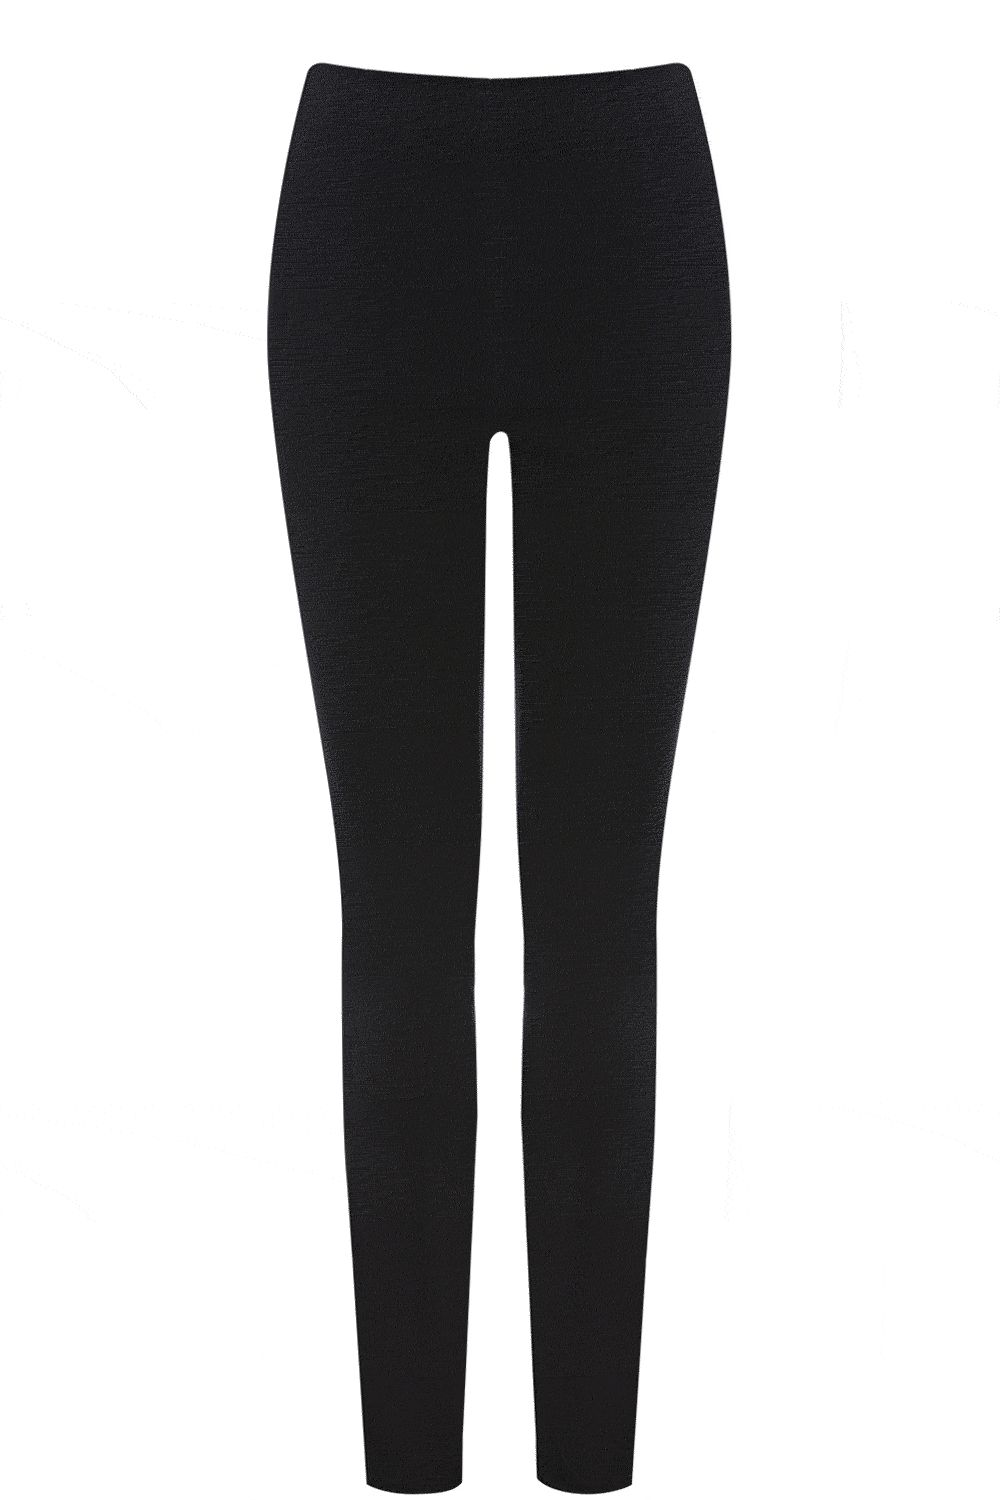 Cara black side zip jegging